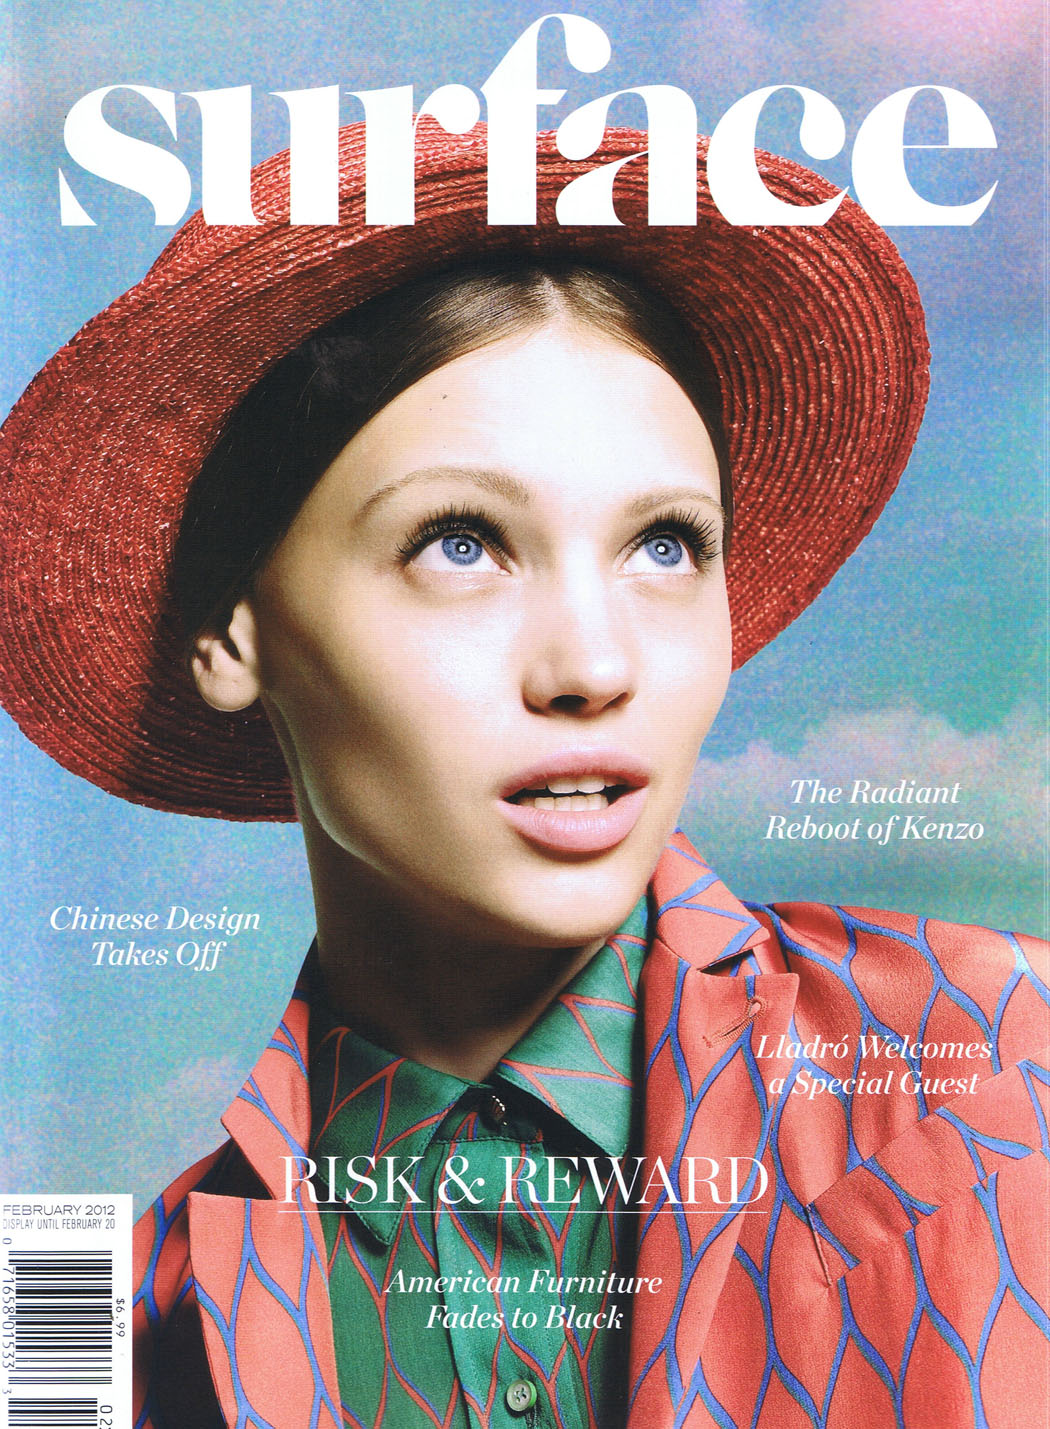 Surface magazine is an American publication covering design, architecture, fashion, culture and travel; it publishes 10 times a year. The publication has an online presence through the Surface 7 biweekly newsletter, as well as through social media.